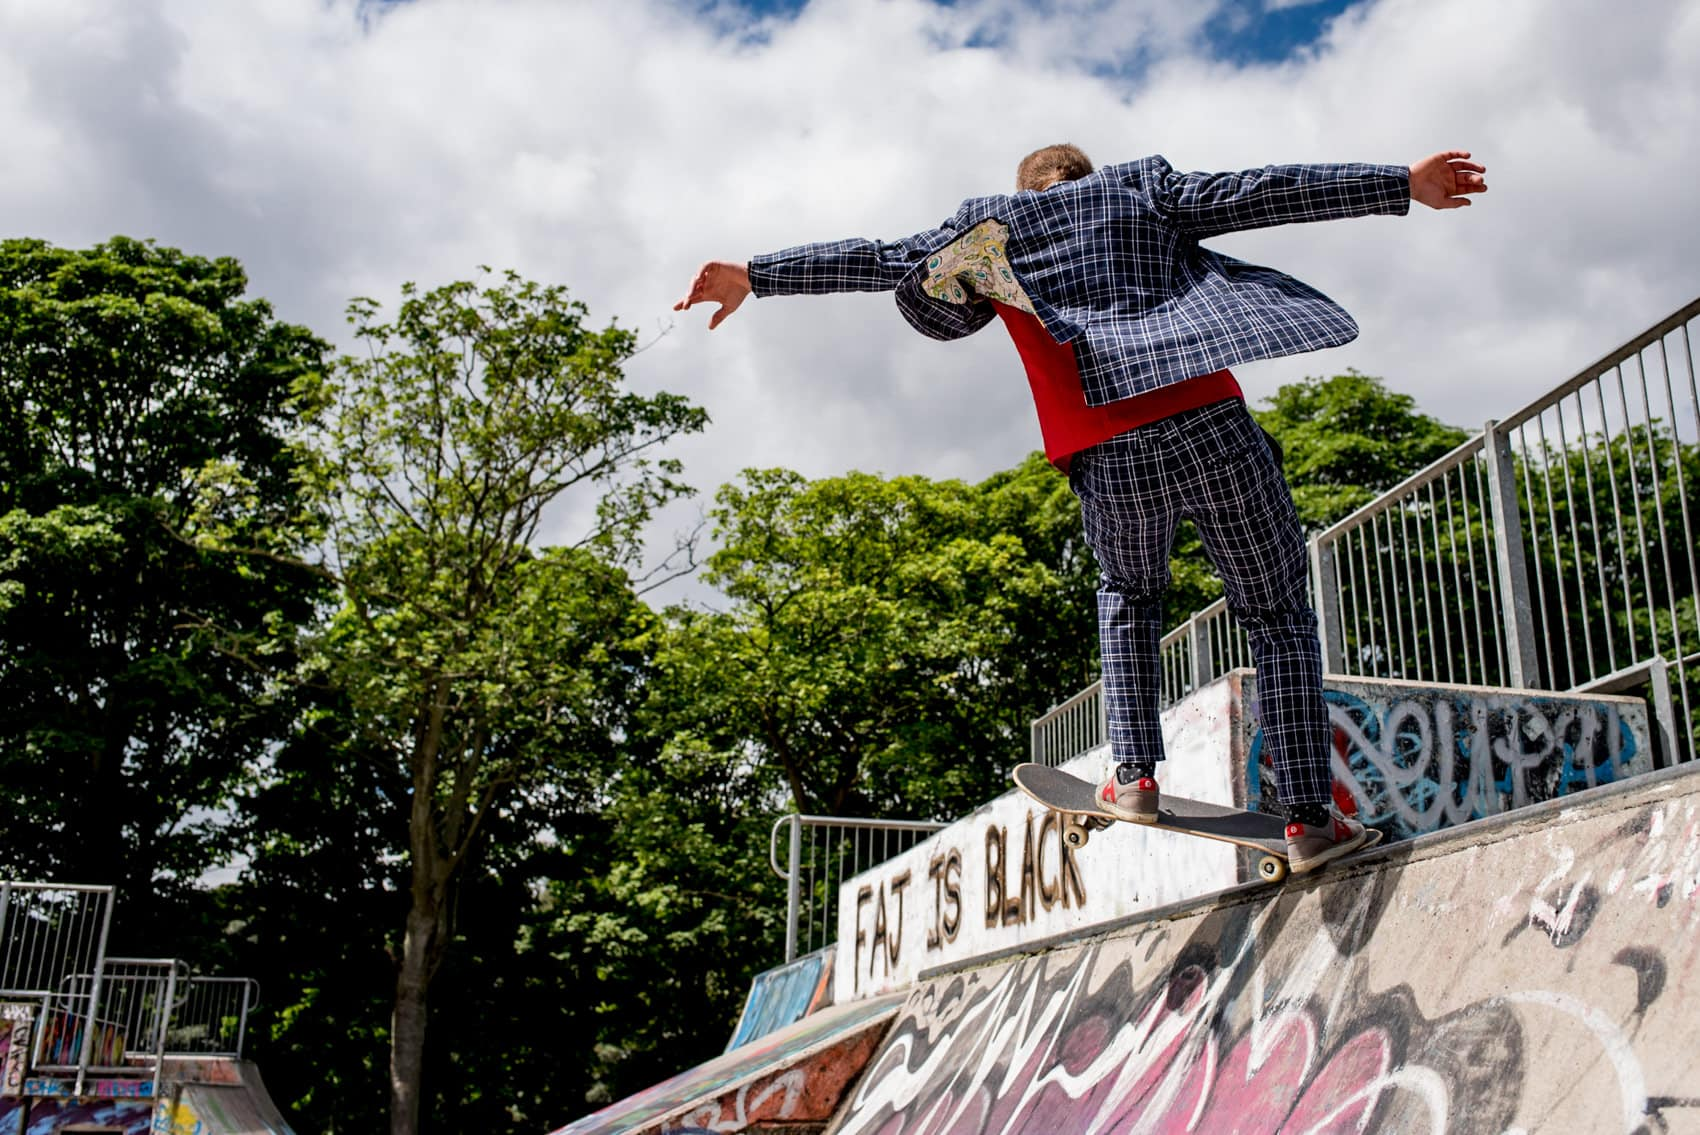 wedding guest skateboarding at Hyde Park skate park in Leeds